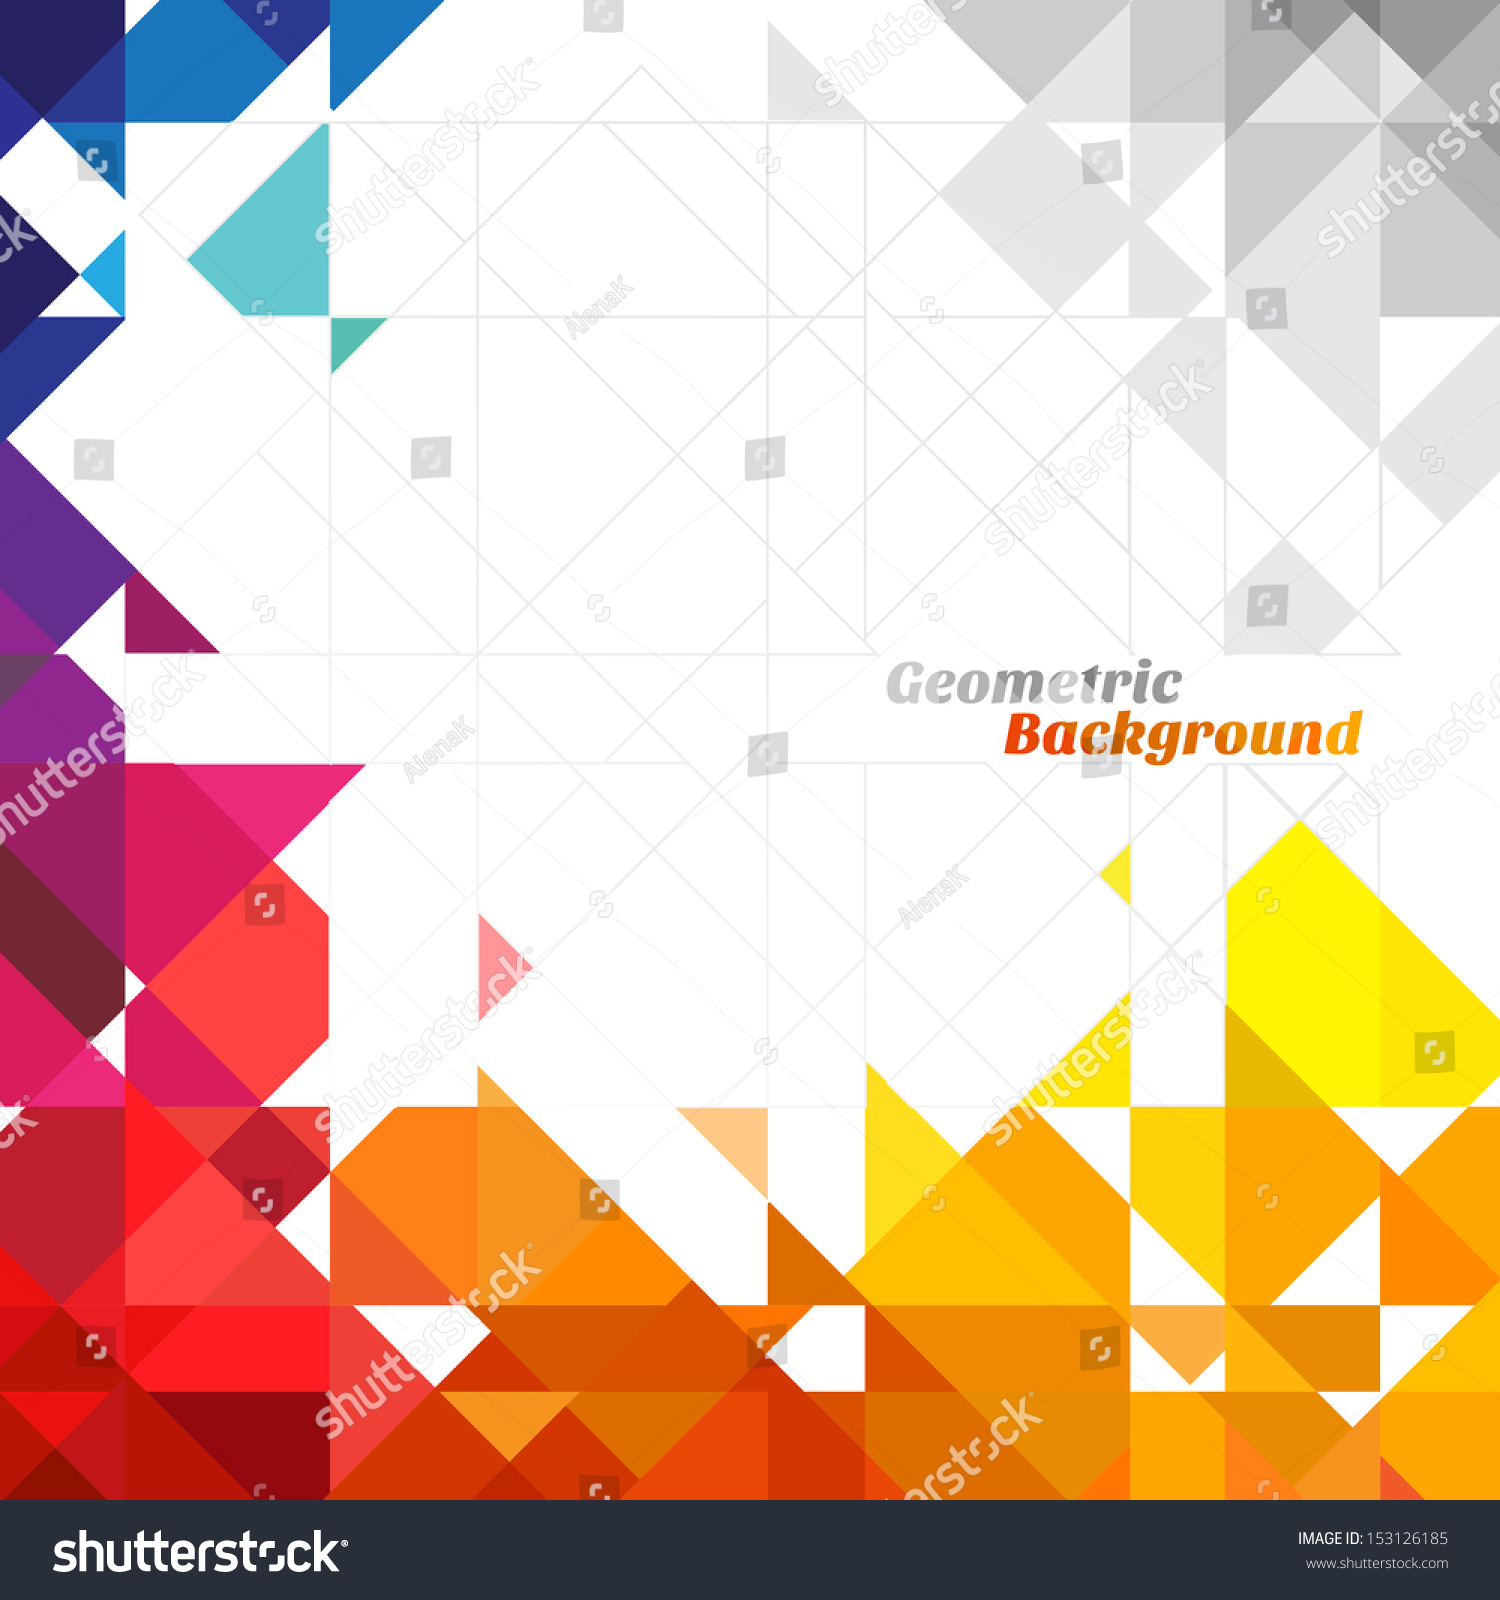 stock vector geometric background - photo #10